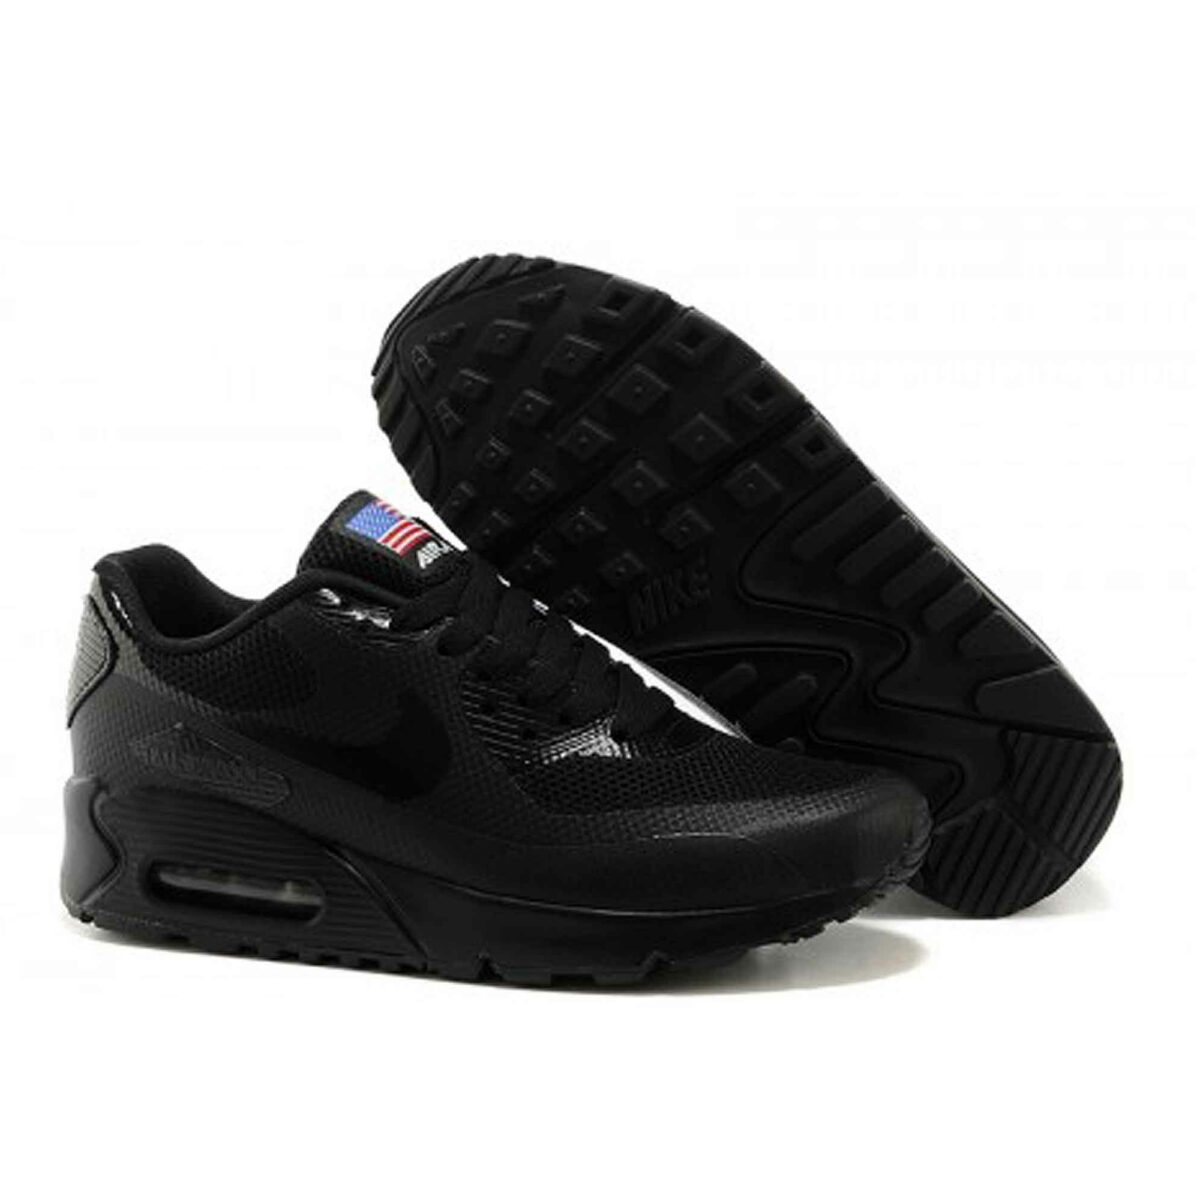 Купить Nike Air Max 90 Hyperfuse Independence Day 2013 Black